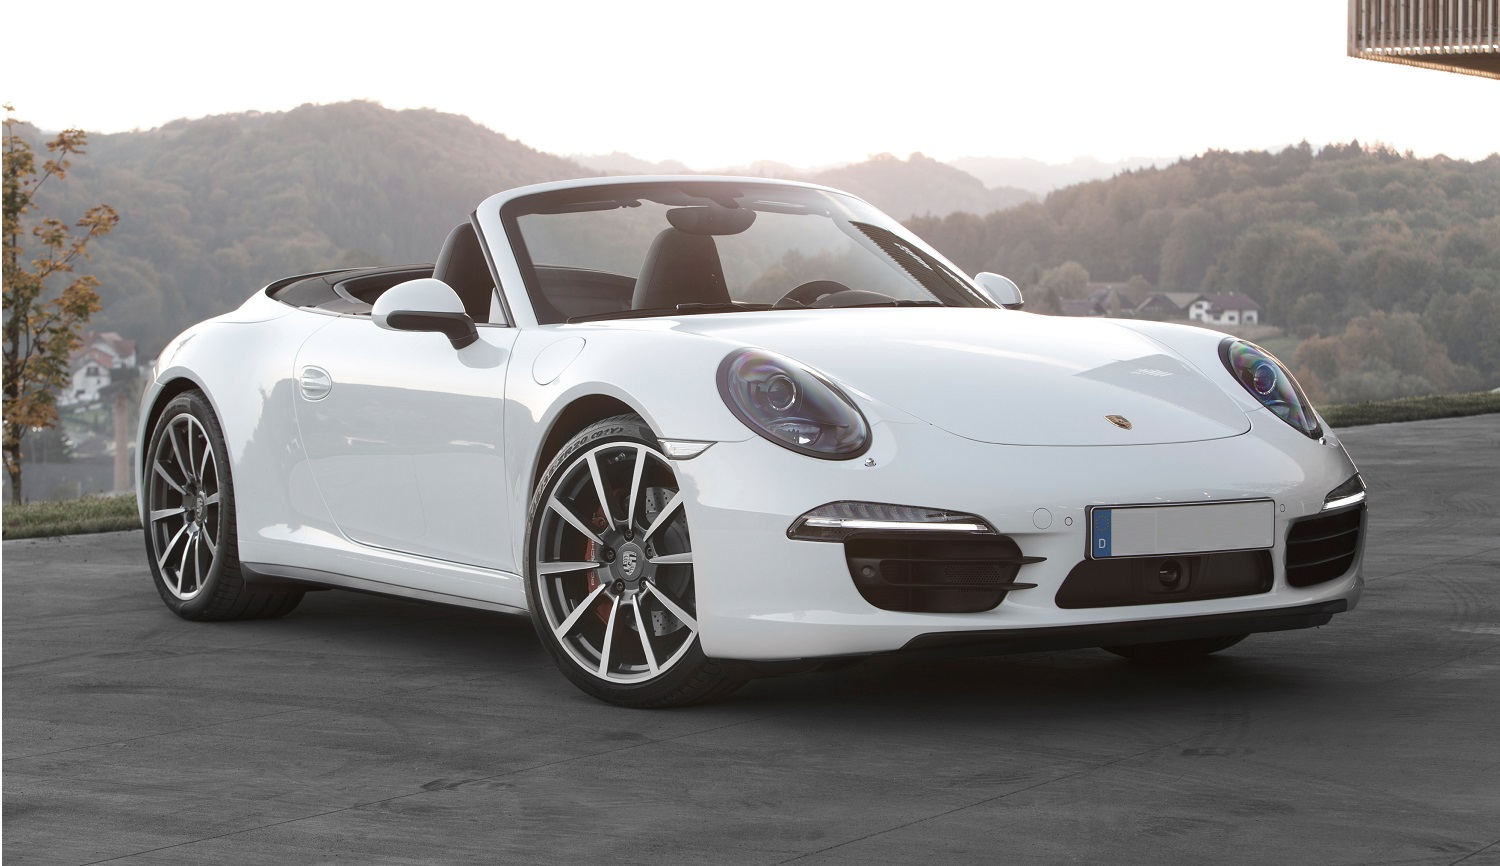 porsche 911 cabriolet - front- luxury car rental houston